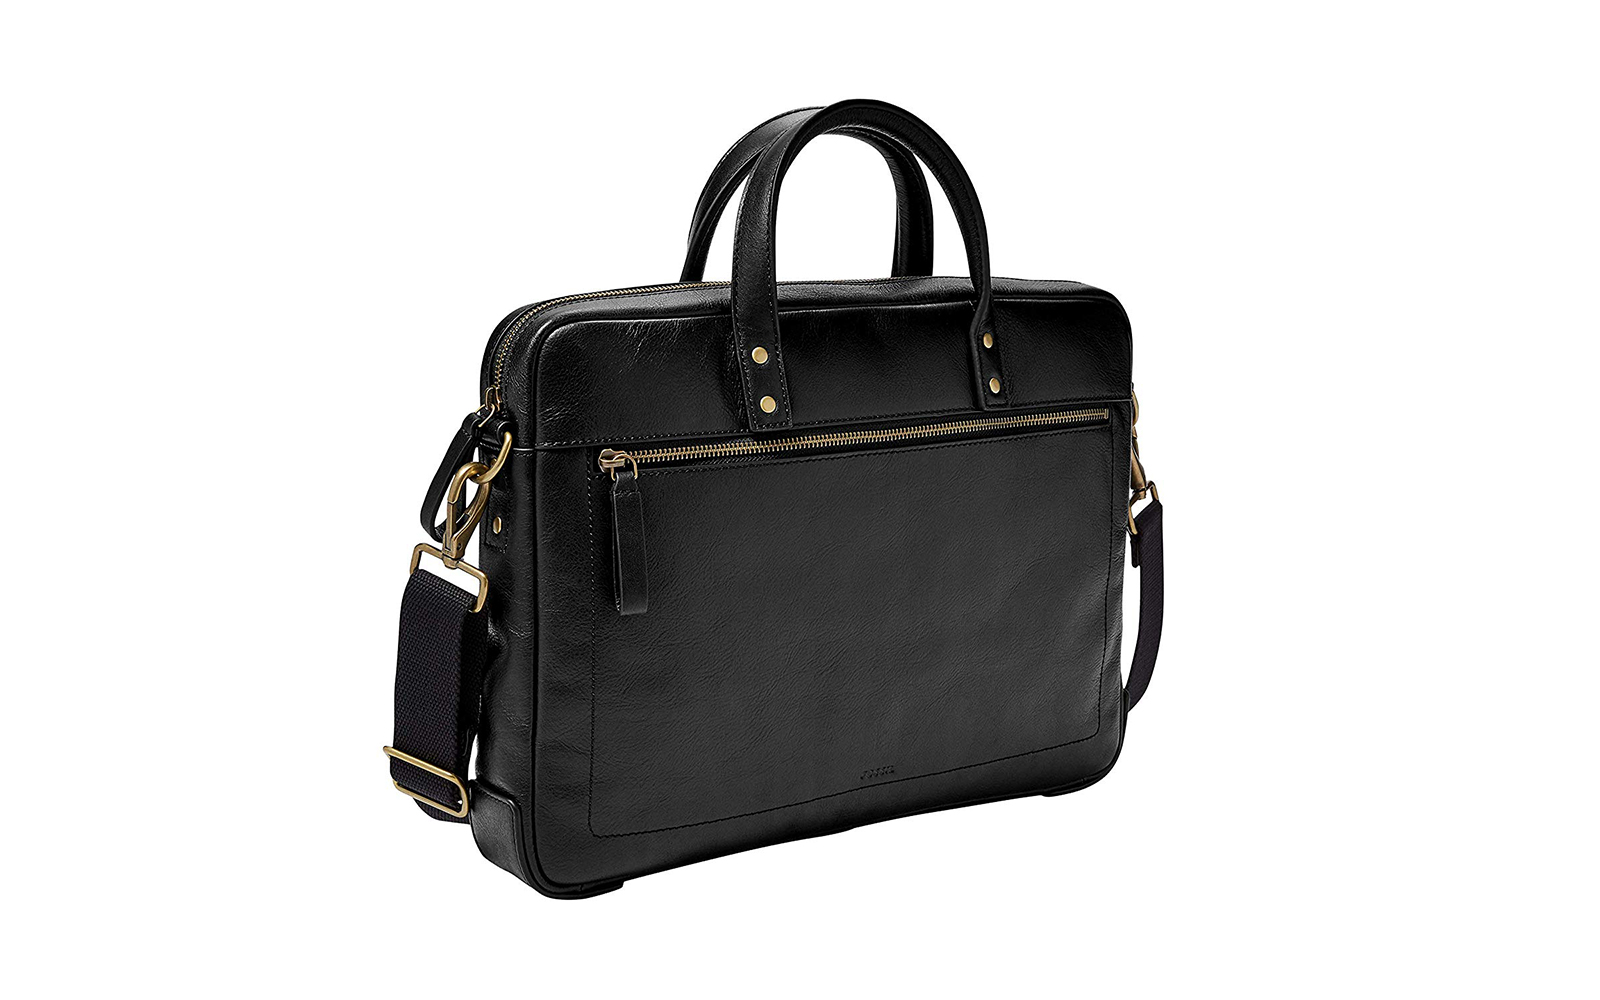 Fossil Men's Haskell Zip Leather Briefcase Bag